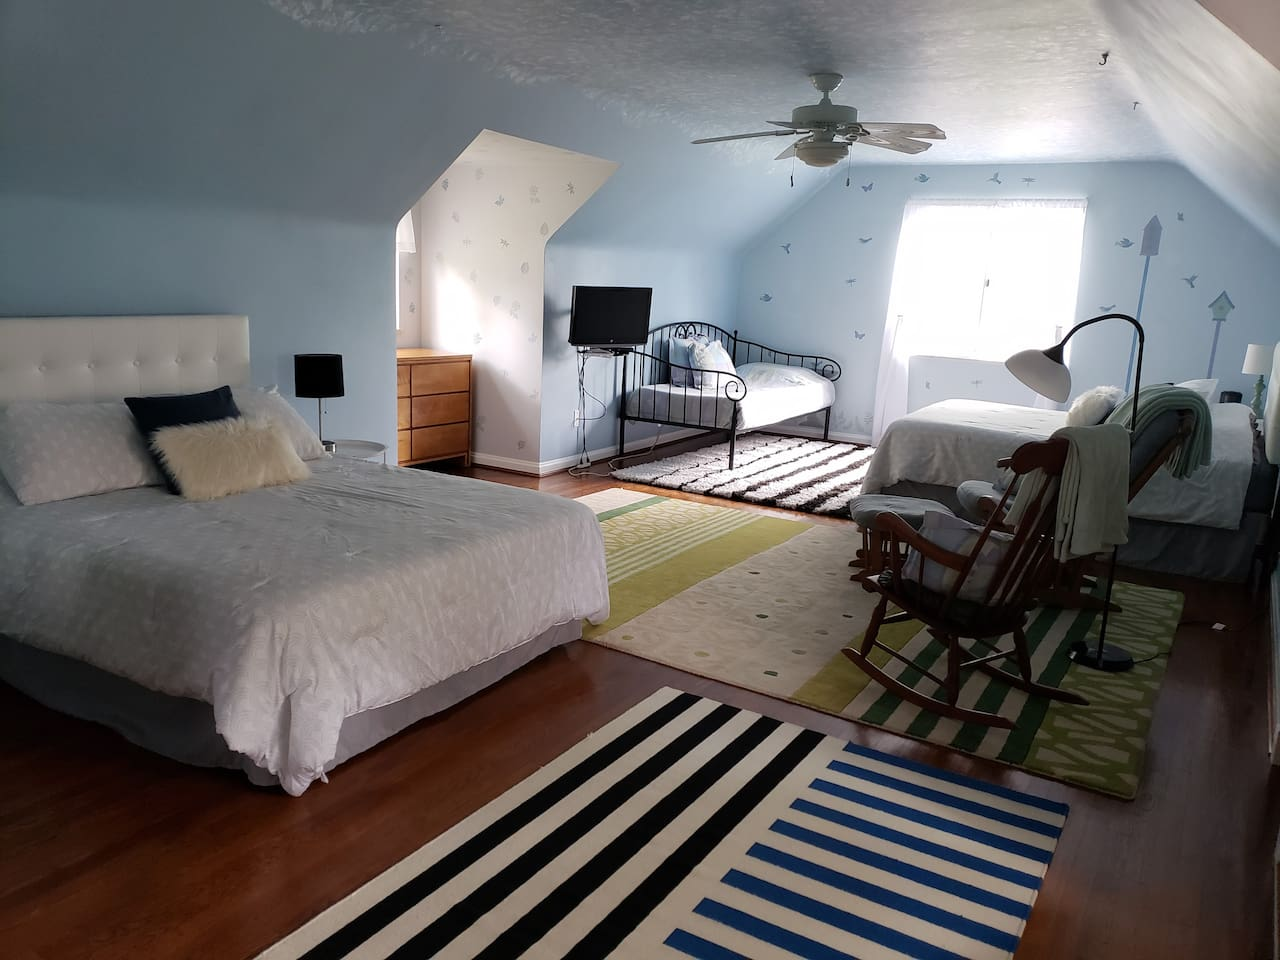 bedroom with 2 queen beds and 1 single bed